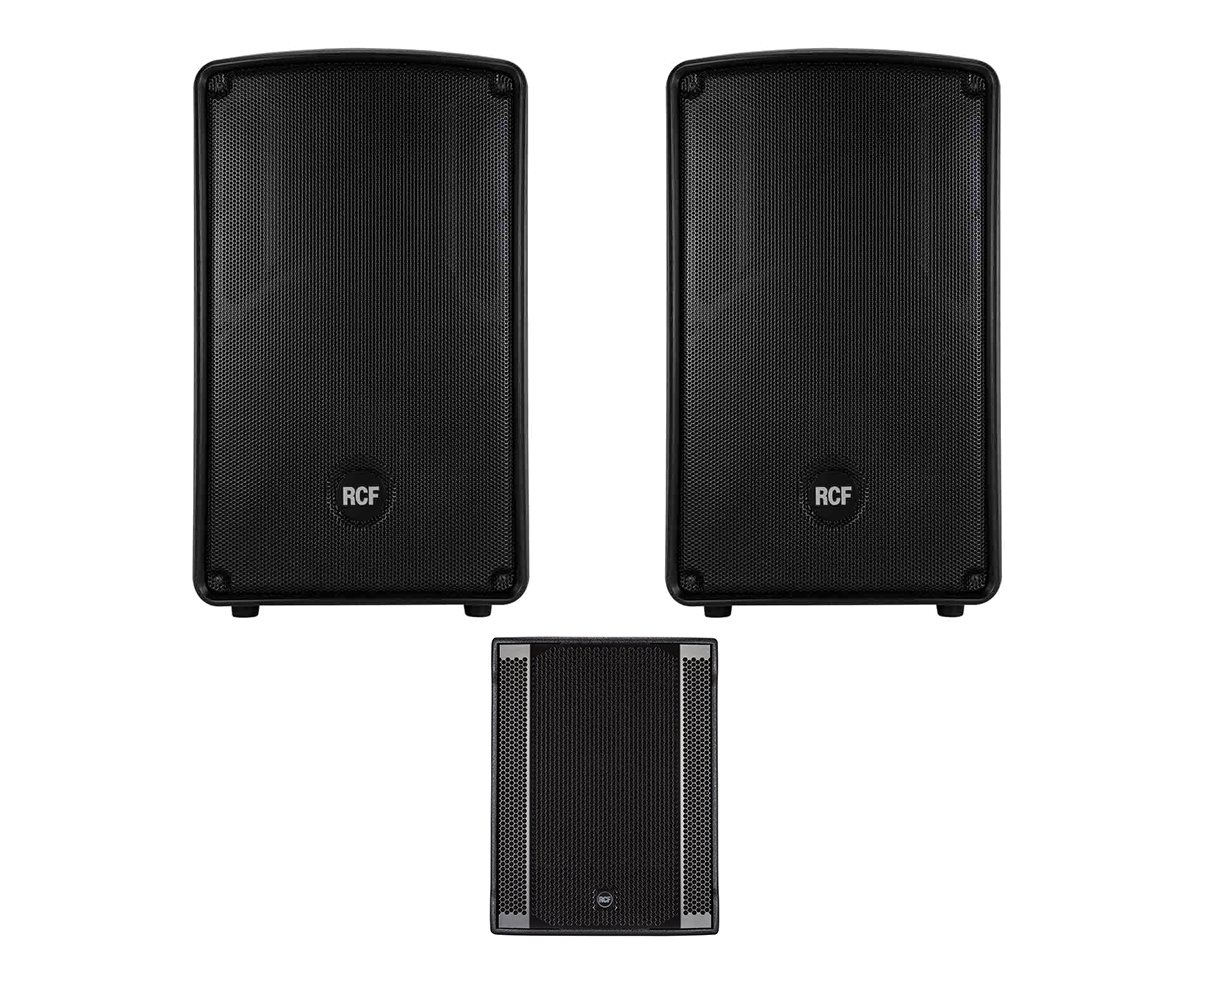 2x RCF HD 12-A MK4 + RCF Sub 708-AS II Active Speaker / Subwoofer 2.1 System